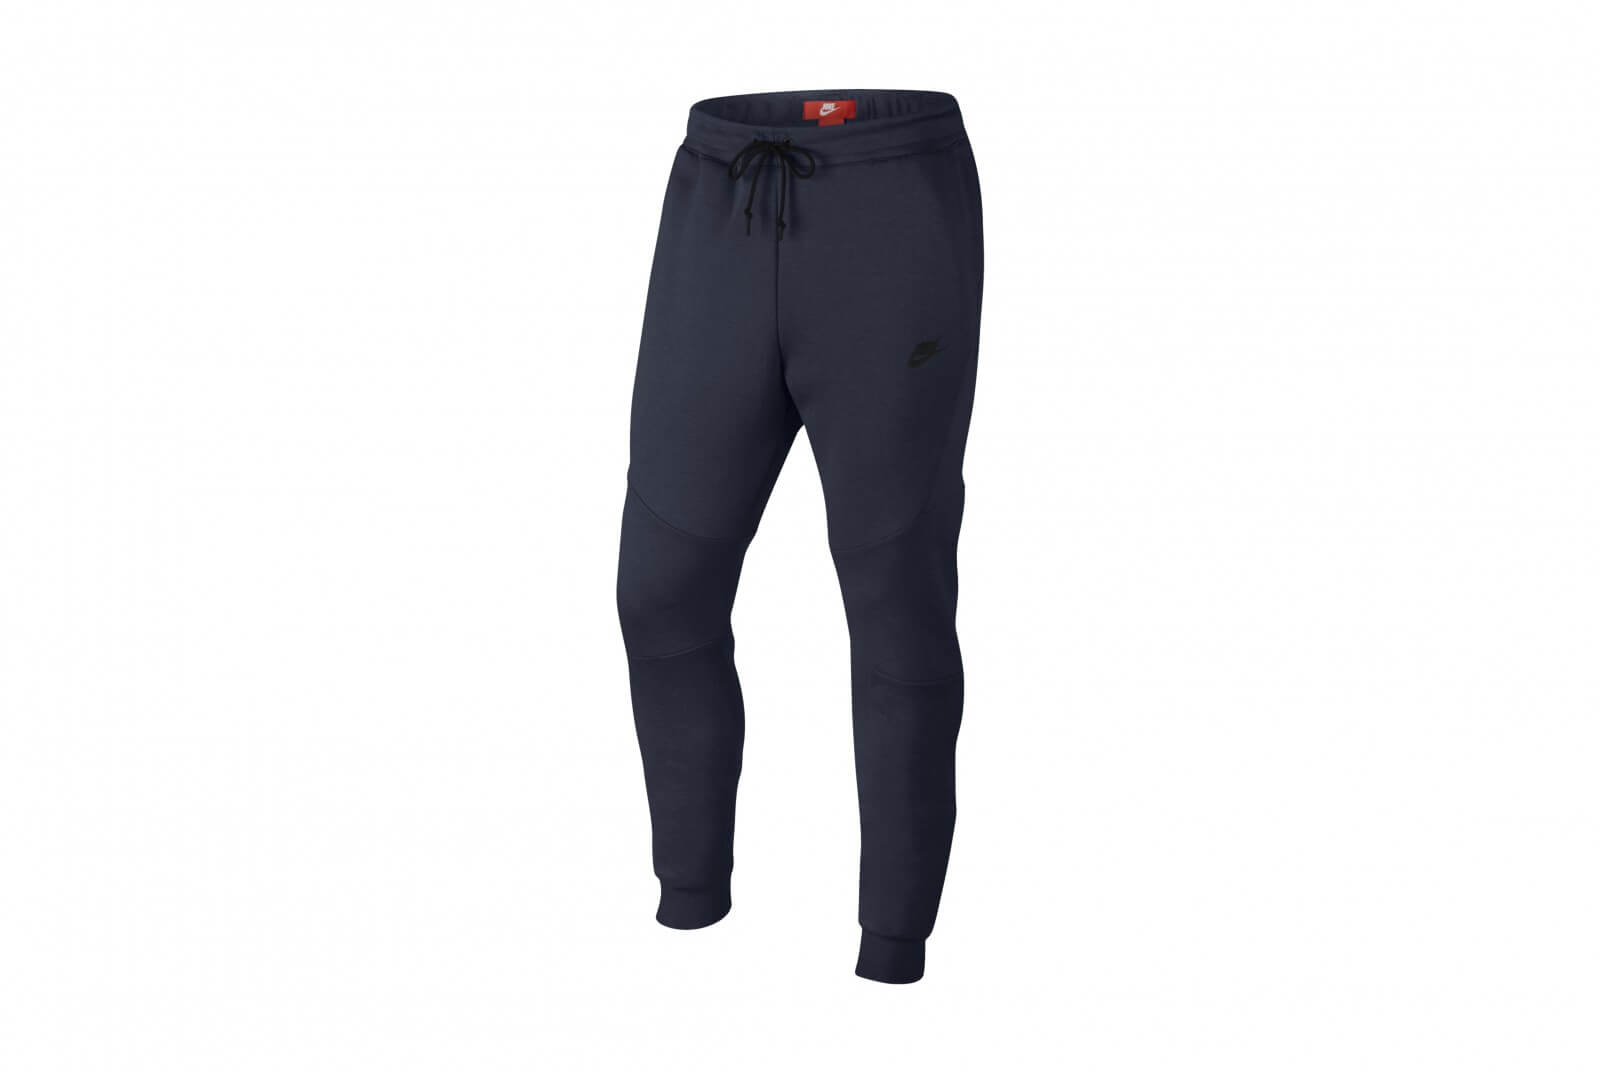 be9b050fe01f Nike 2x Nike Tech Fleece Pants Navy And Grey Size Xl